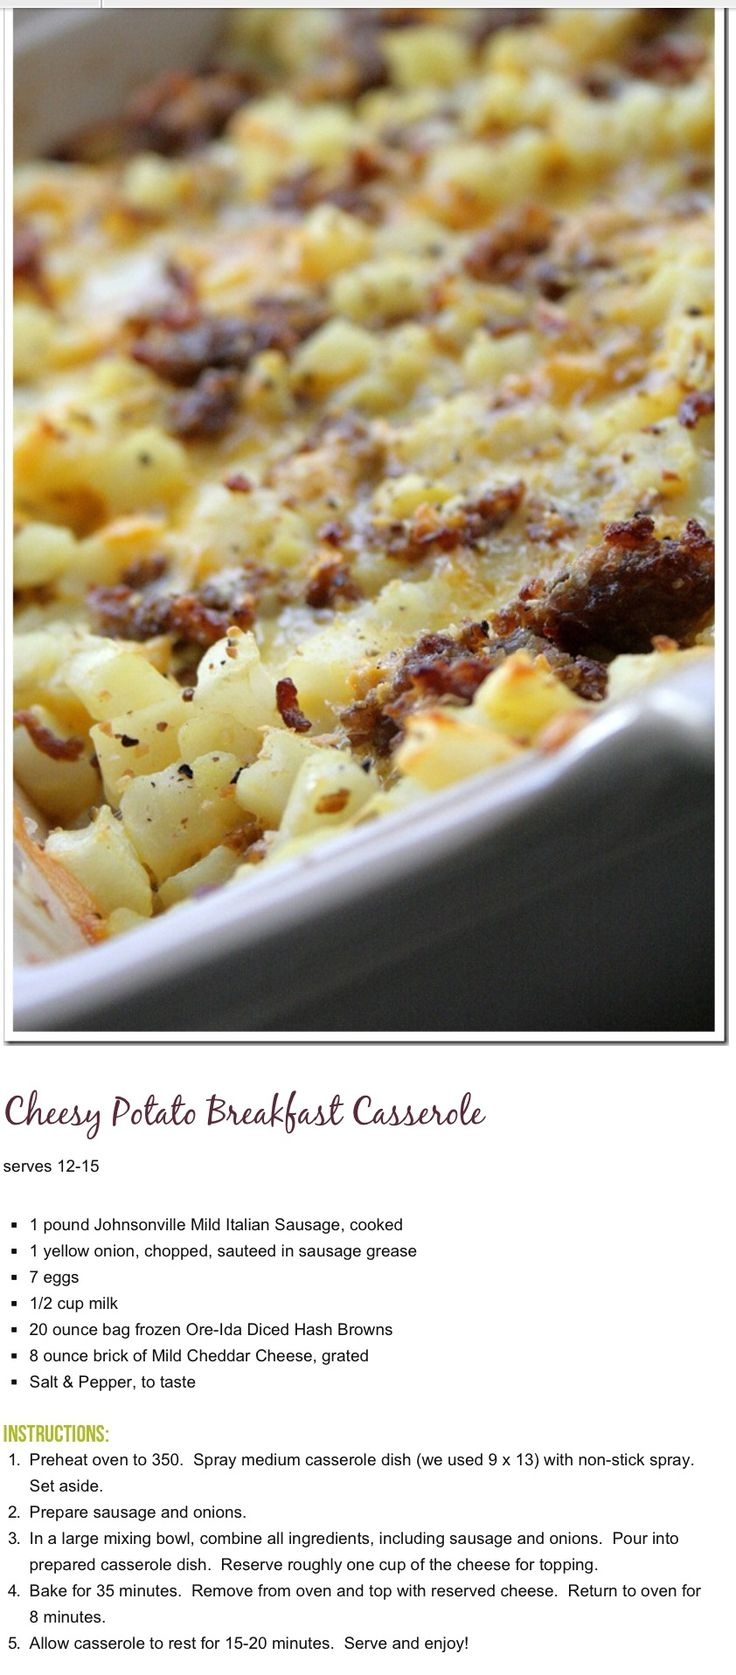 Cheesy potato and sausage breakfast casserole | RECIPES TO TRY ...